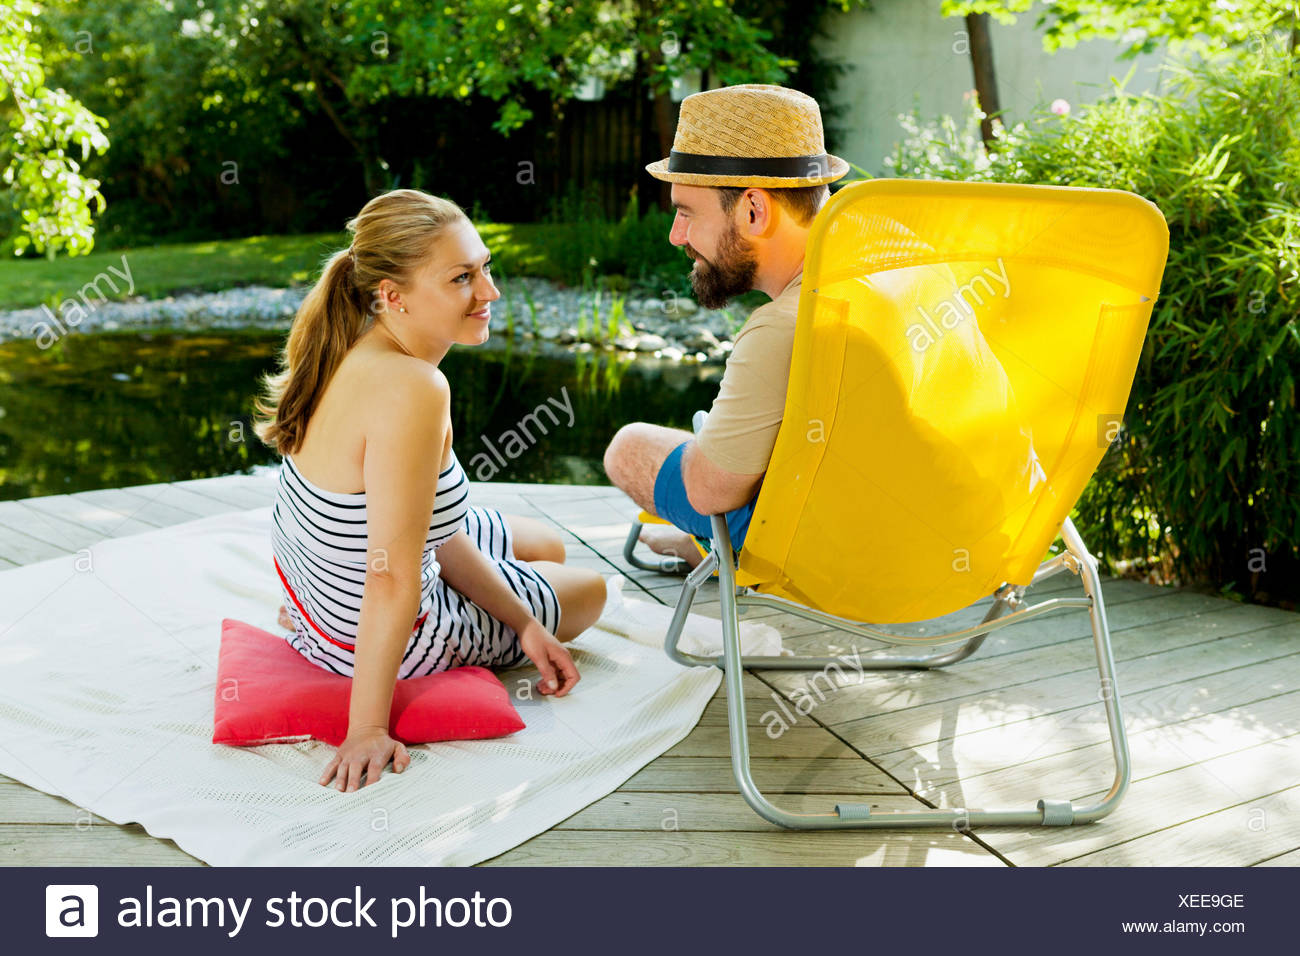 Heterosexual couple takes a break by the pond, Munich, Bavaria, Germany - Stock Image